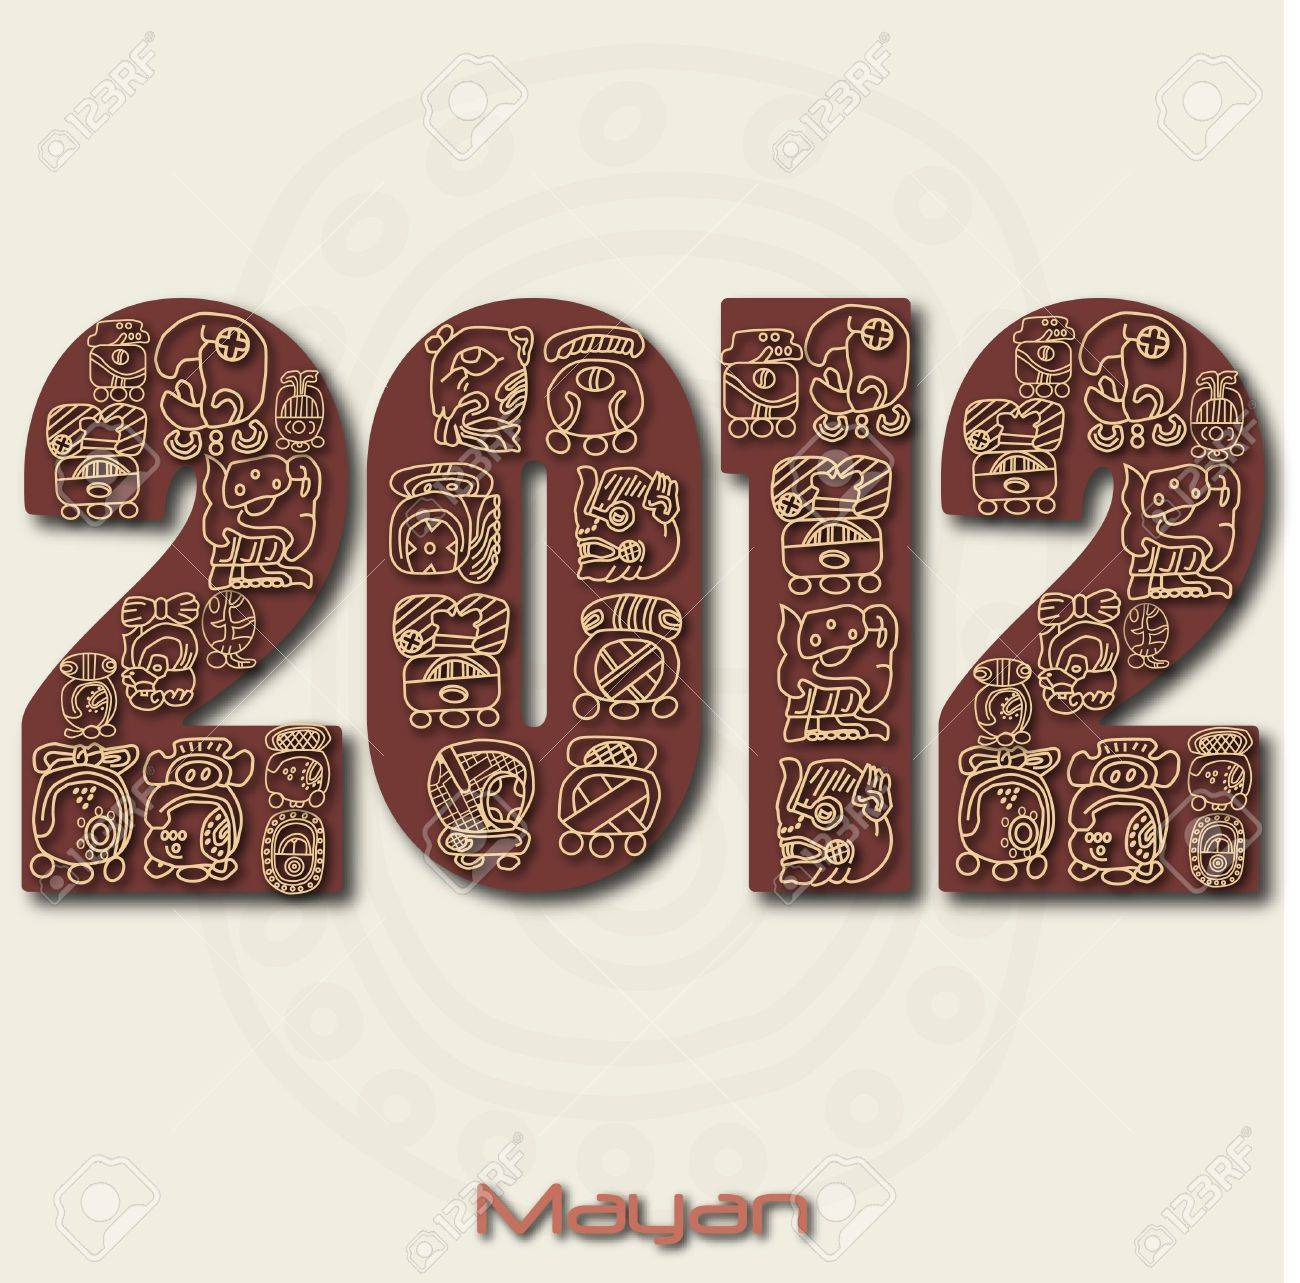 Image of the year 2012 with Mayan ruins isolated on a white background. Stock Photo - 8856055